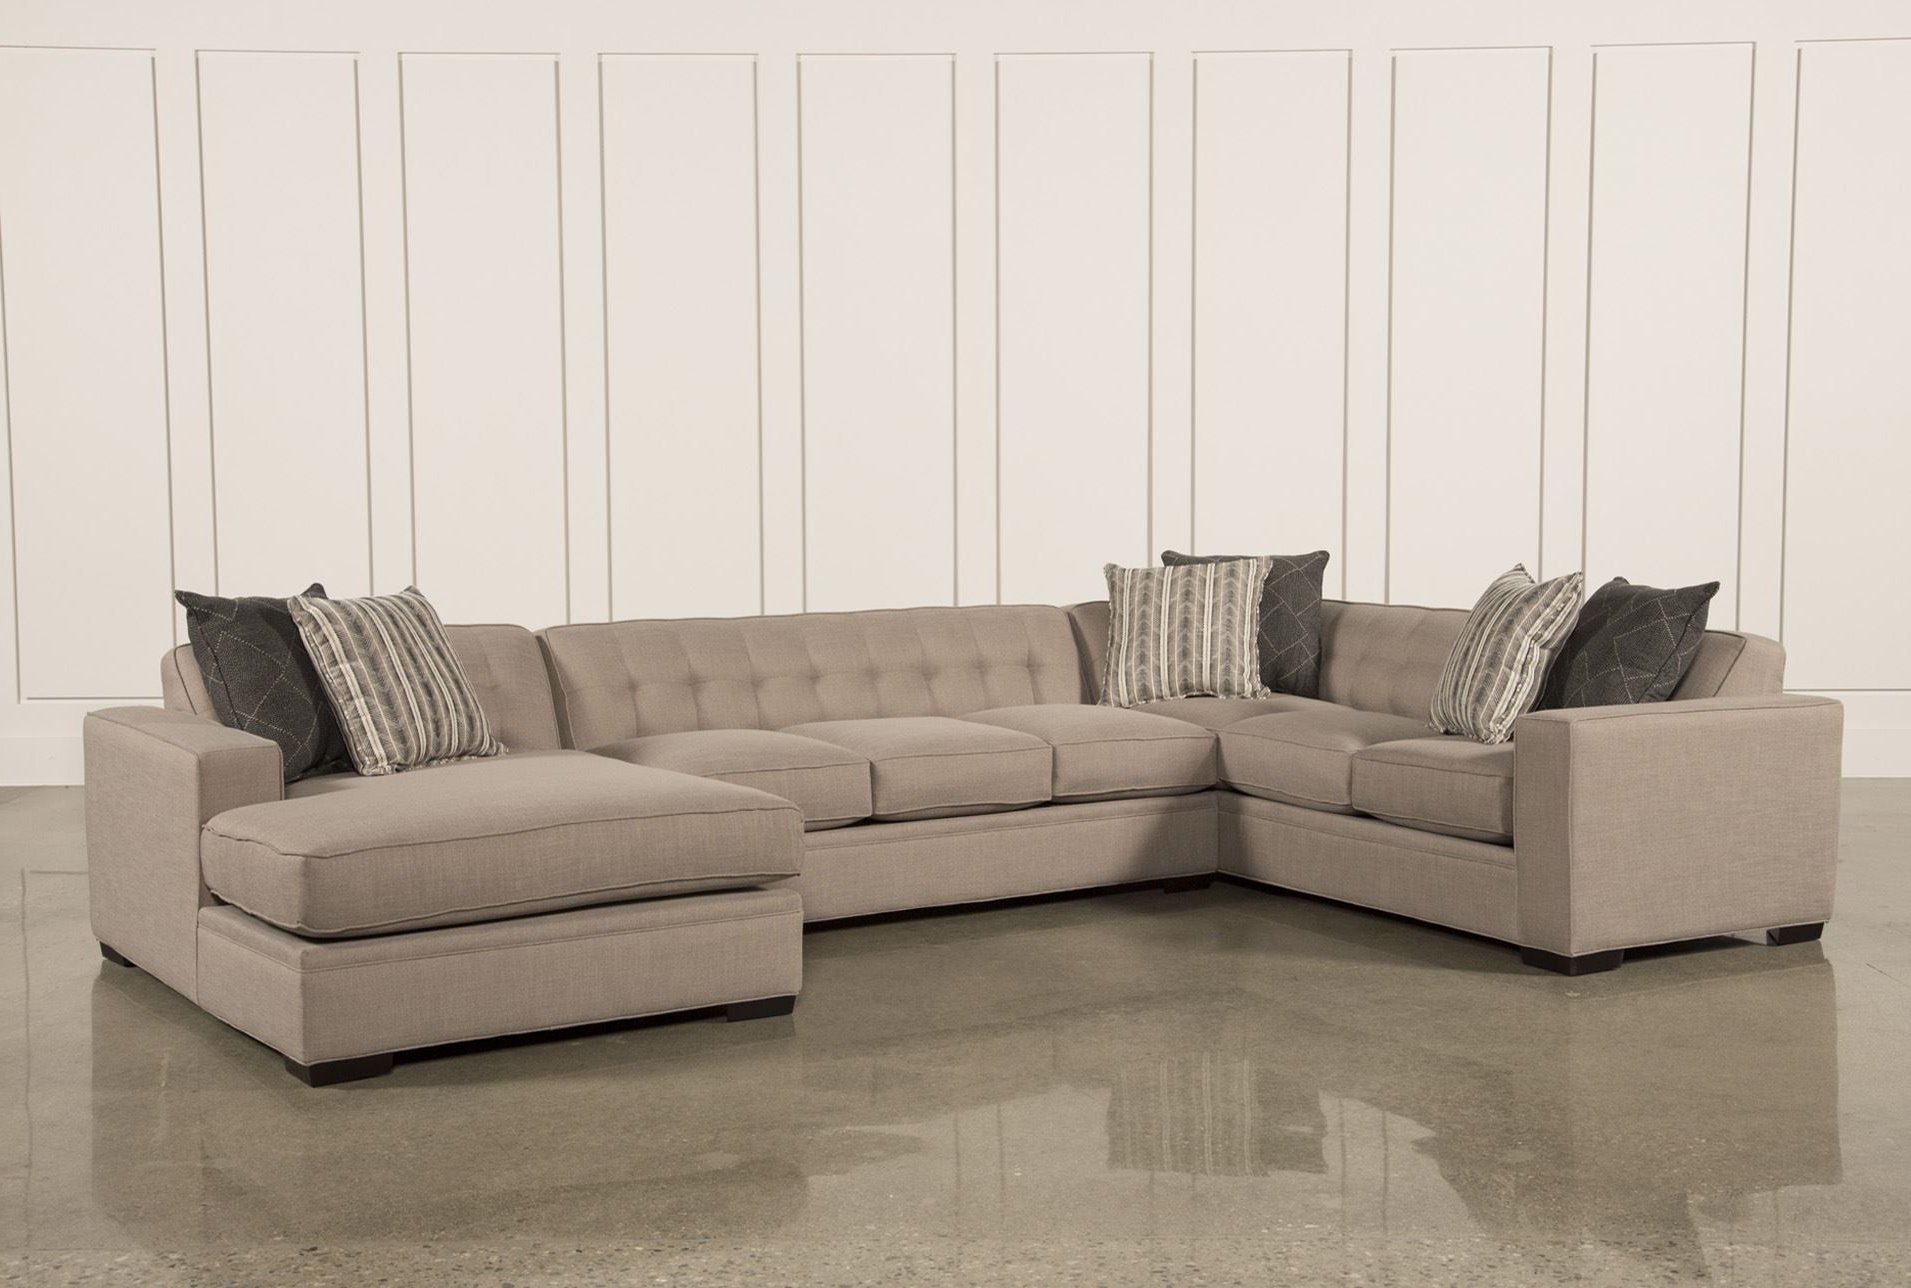 Pinterest Pertaining To Well Known Norfolk Grey 3 Piece Sectionals With Laf Chaise (View 4 of 20)